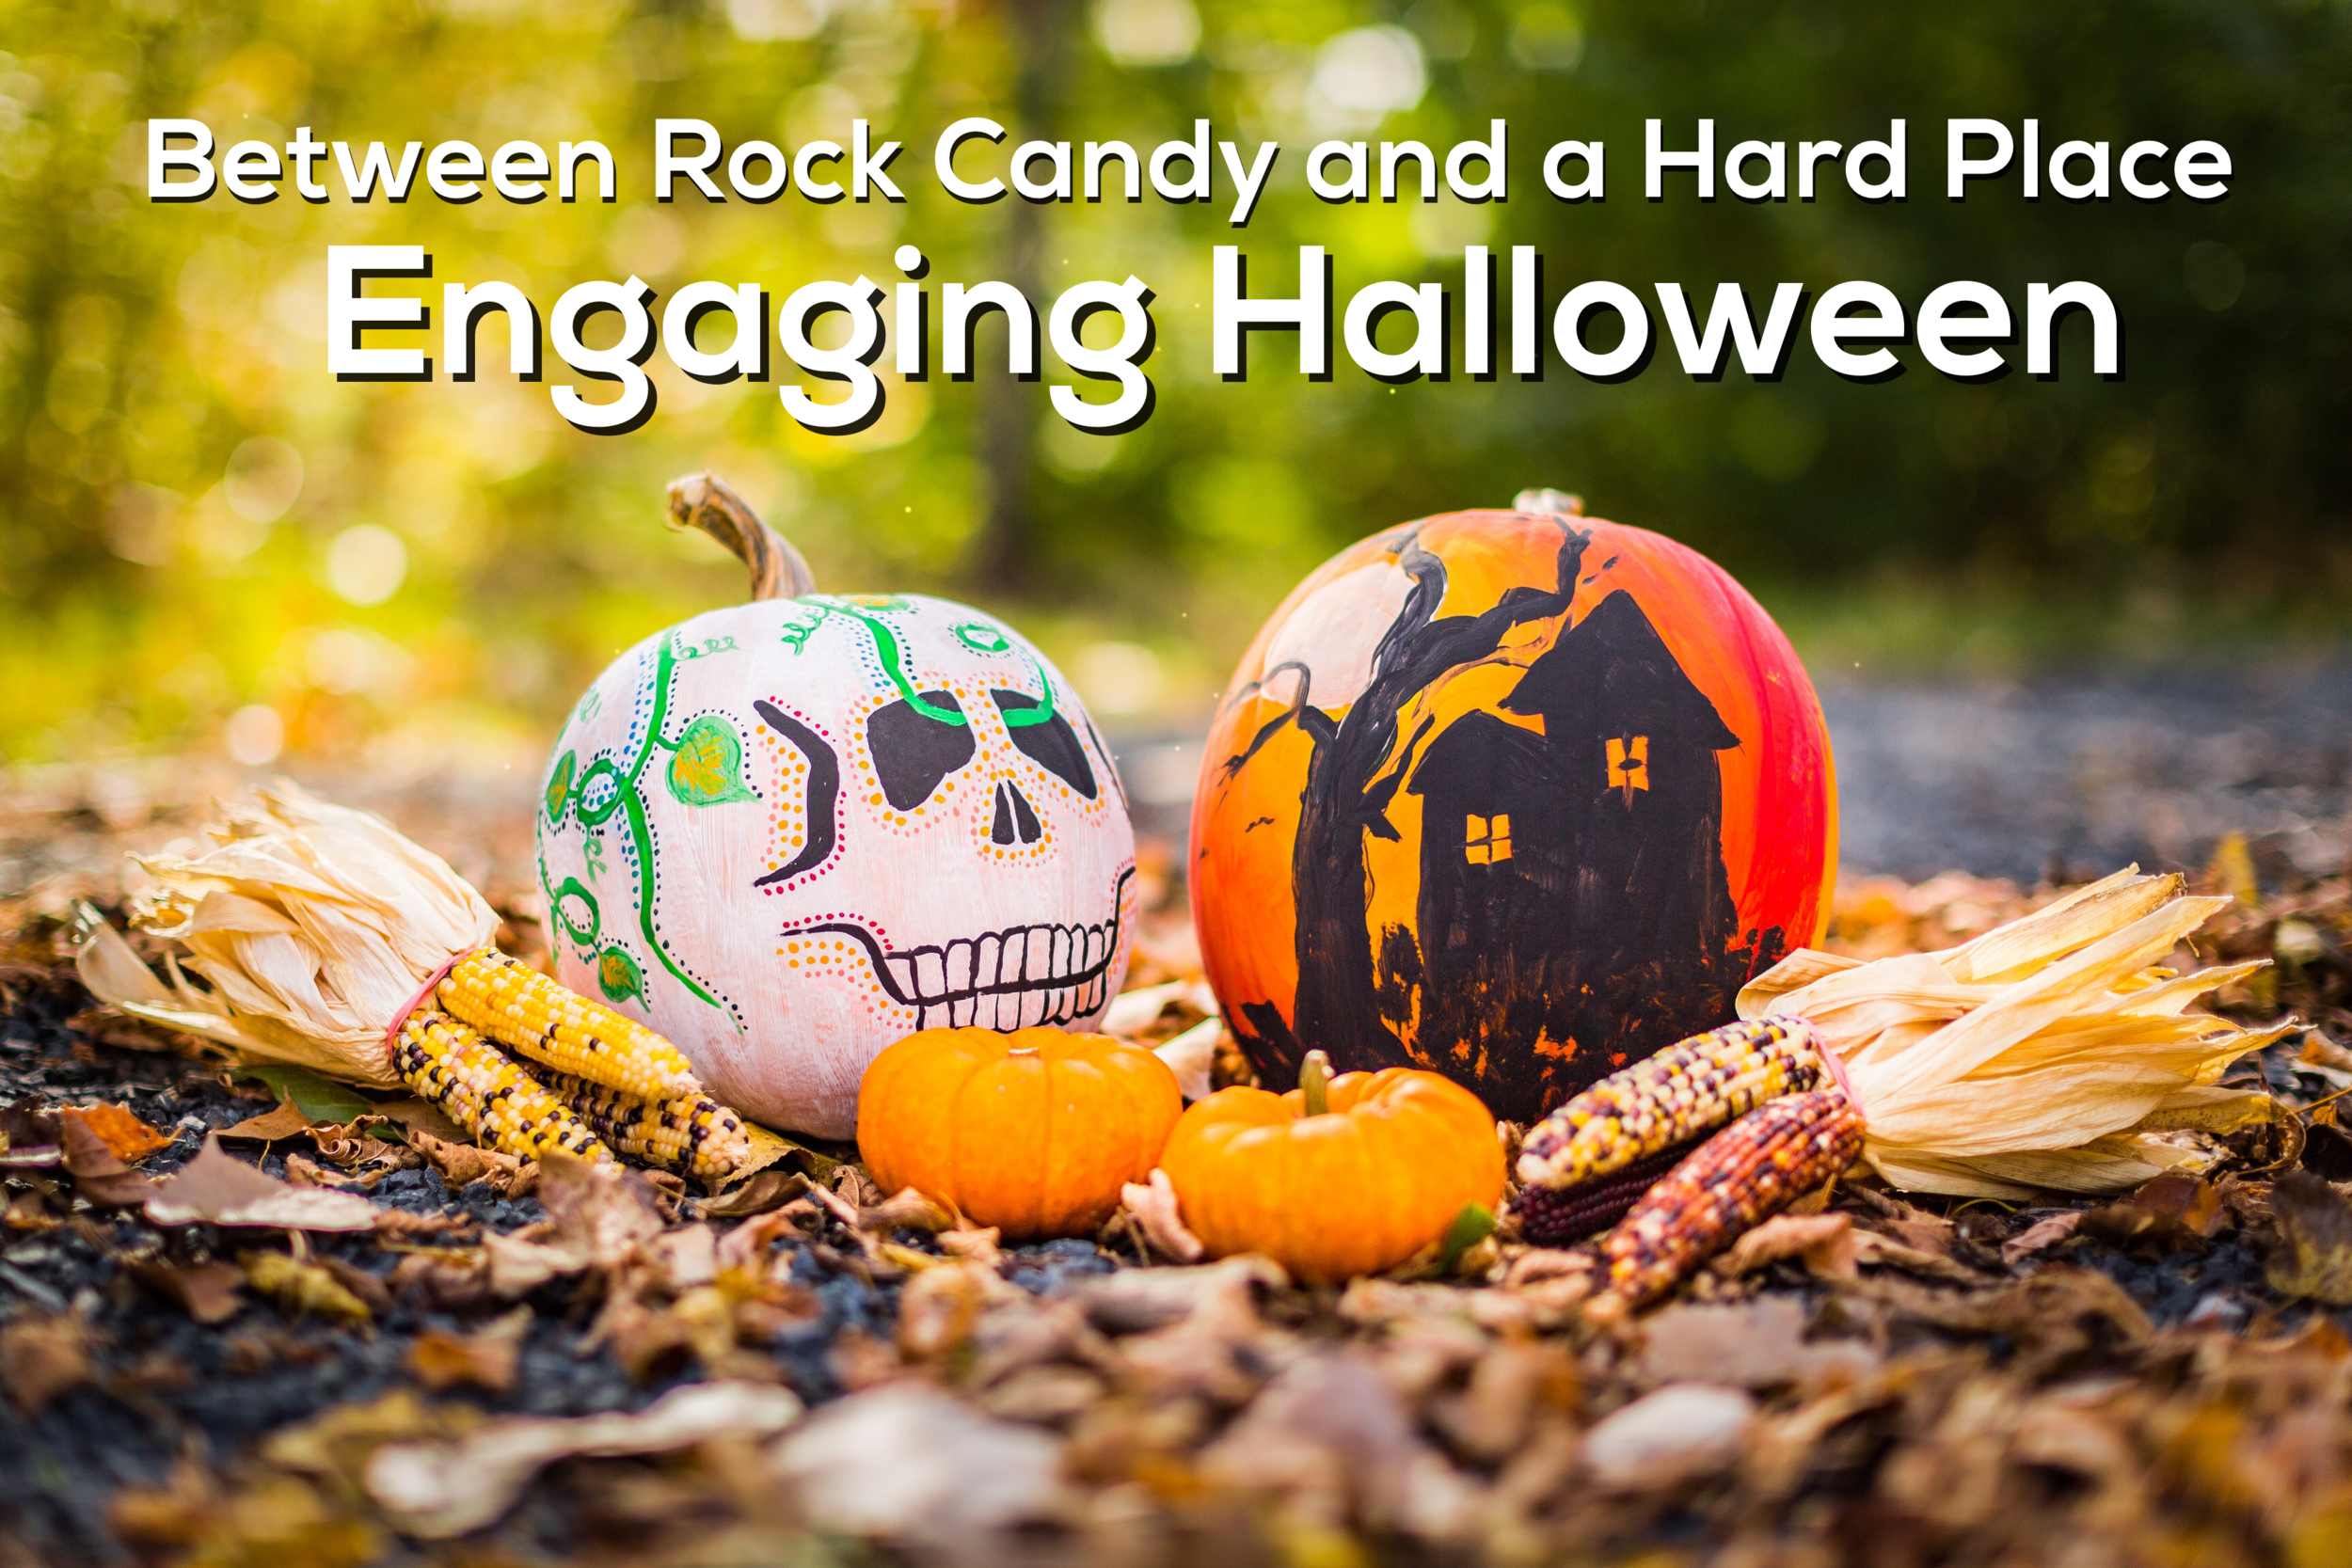 Reid and Jesse briefly discuss the history of Halloween and give some five fingered guidance for engaging the holiday today.